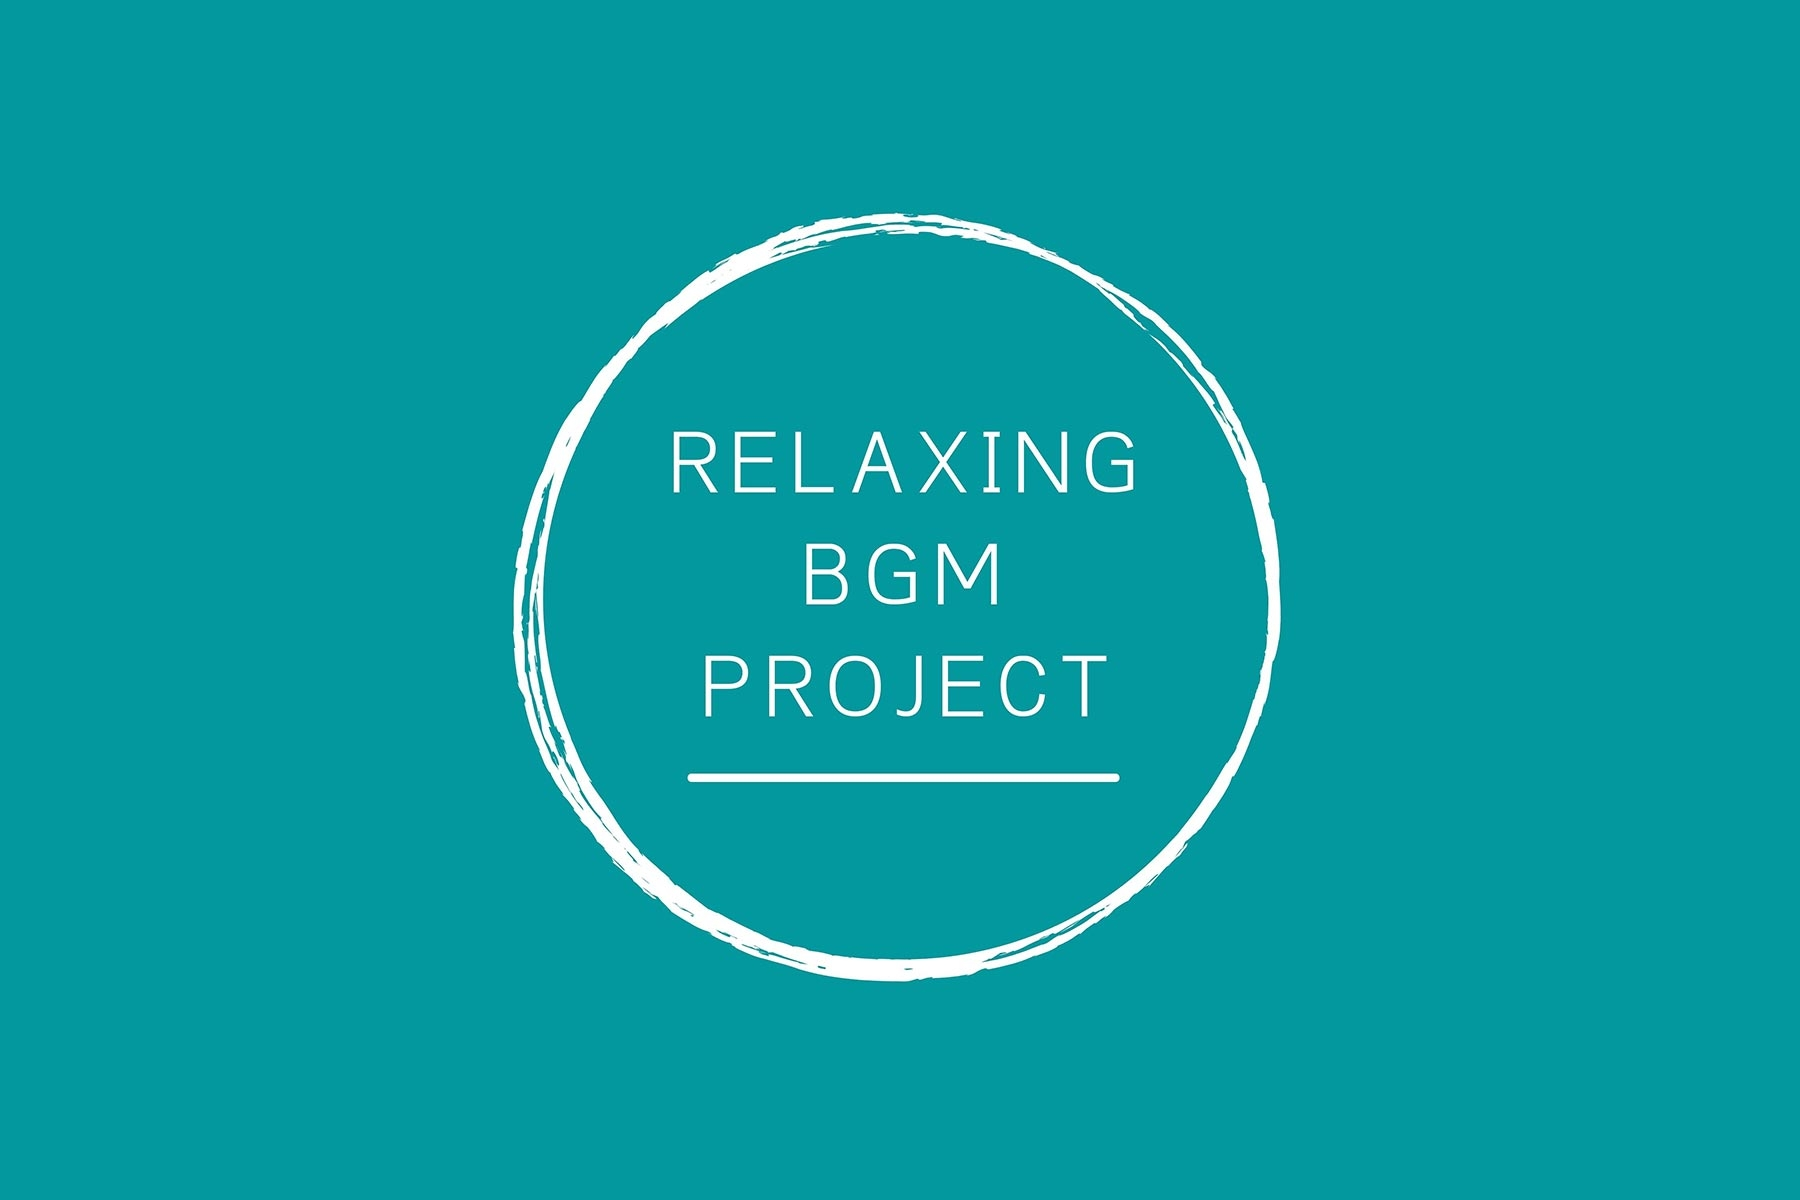 Relaxing BGM Projectの画像